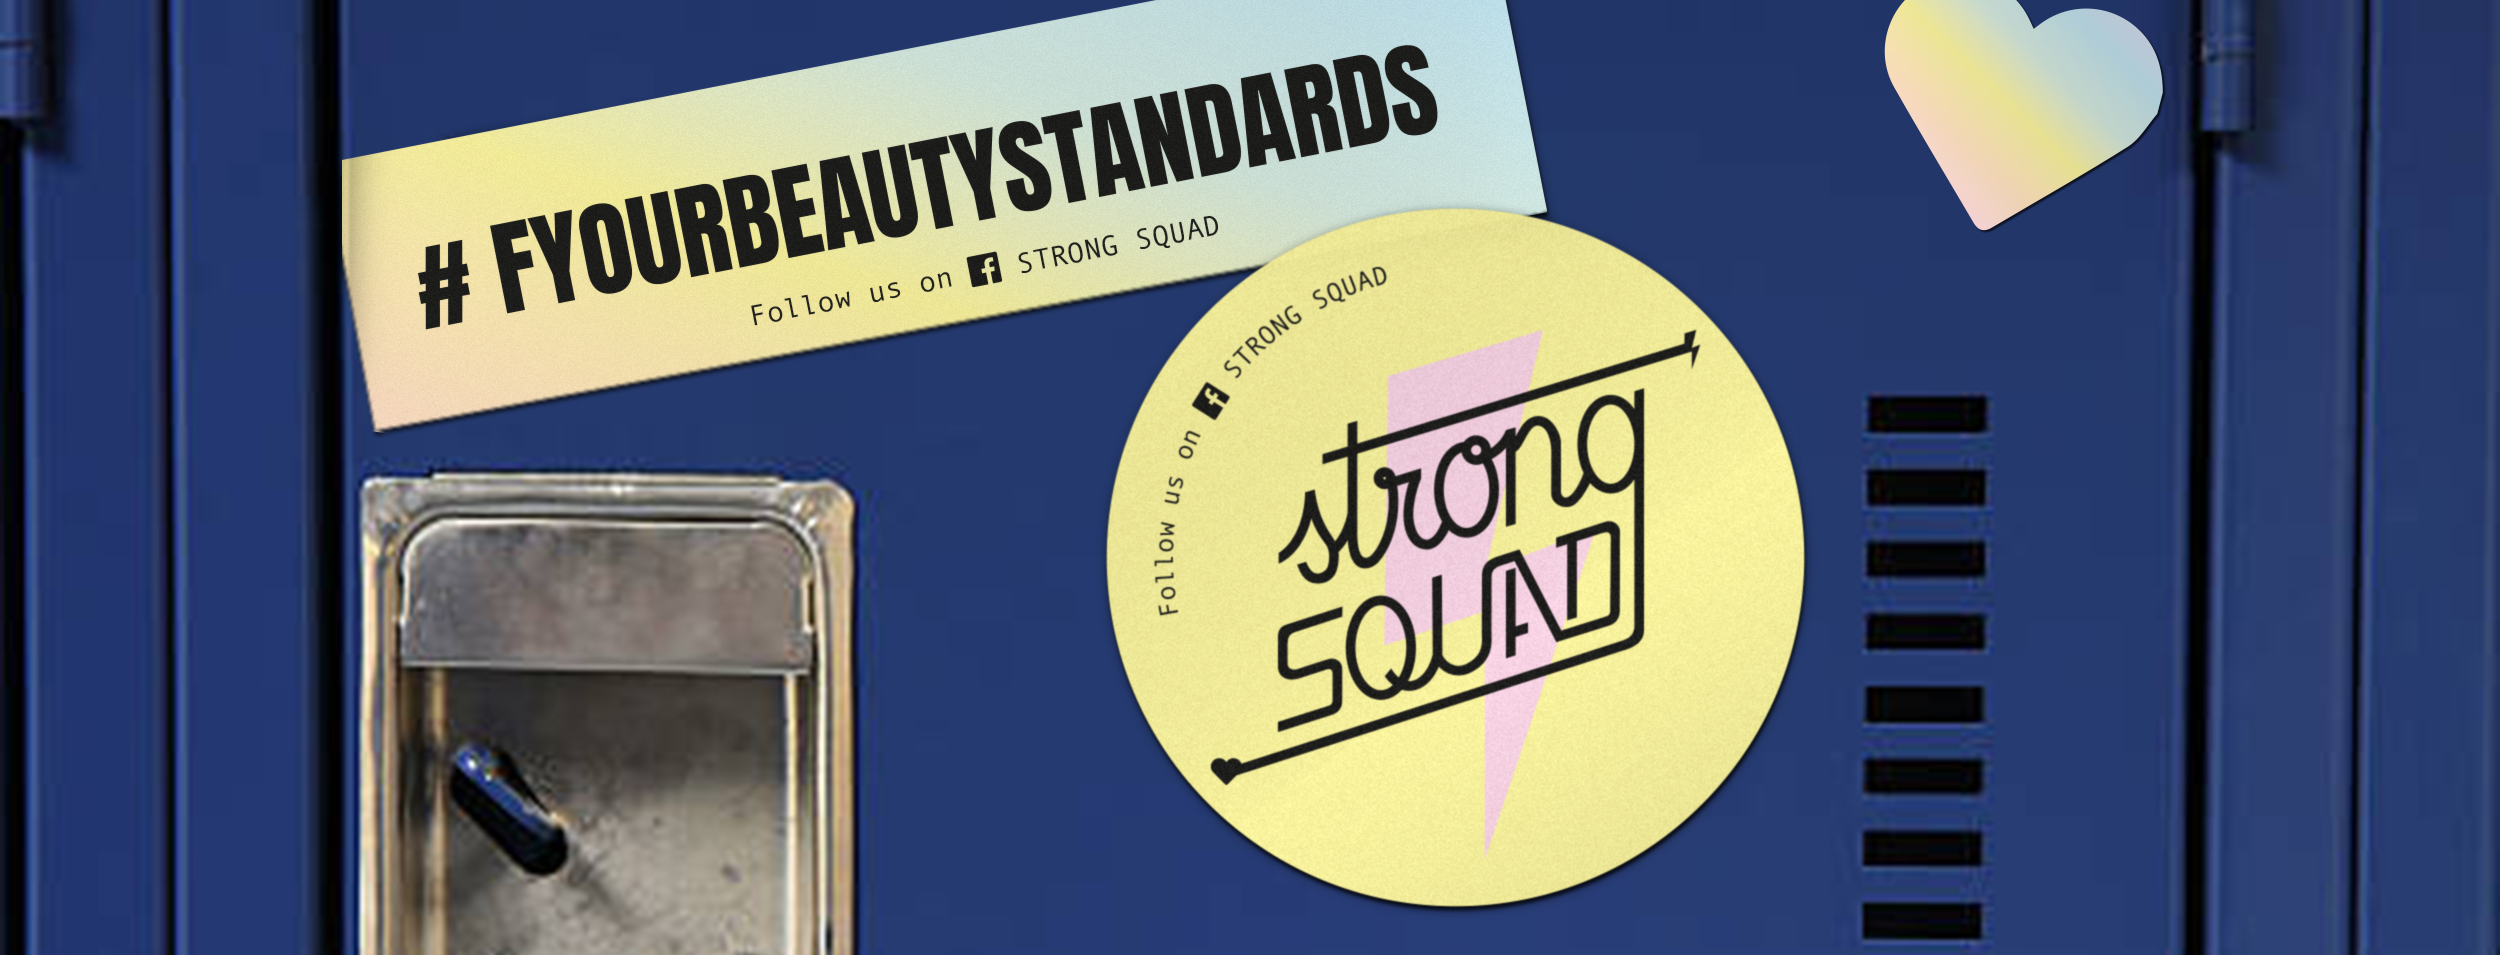 """The image shows three stickers on a high school locker. One of the stickers reads """"#F YOUR BEAUTY STANDARDS"""" over a pastel colors gradient. The second sticker is rounded and has the Strong Squad logo printed over a pastel yellow background with a pink bolt in the center. The third sticker is heart-shaped and has the same pastel gradient as the first one."""